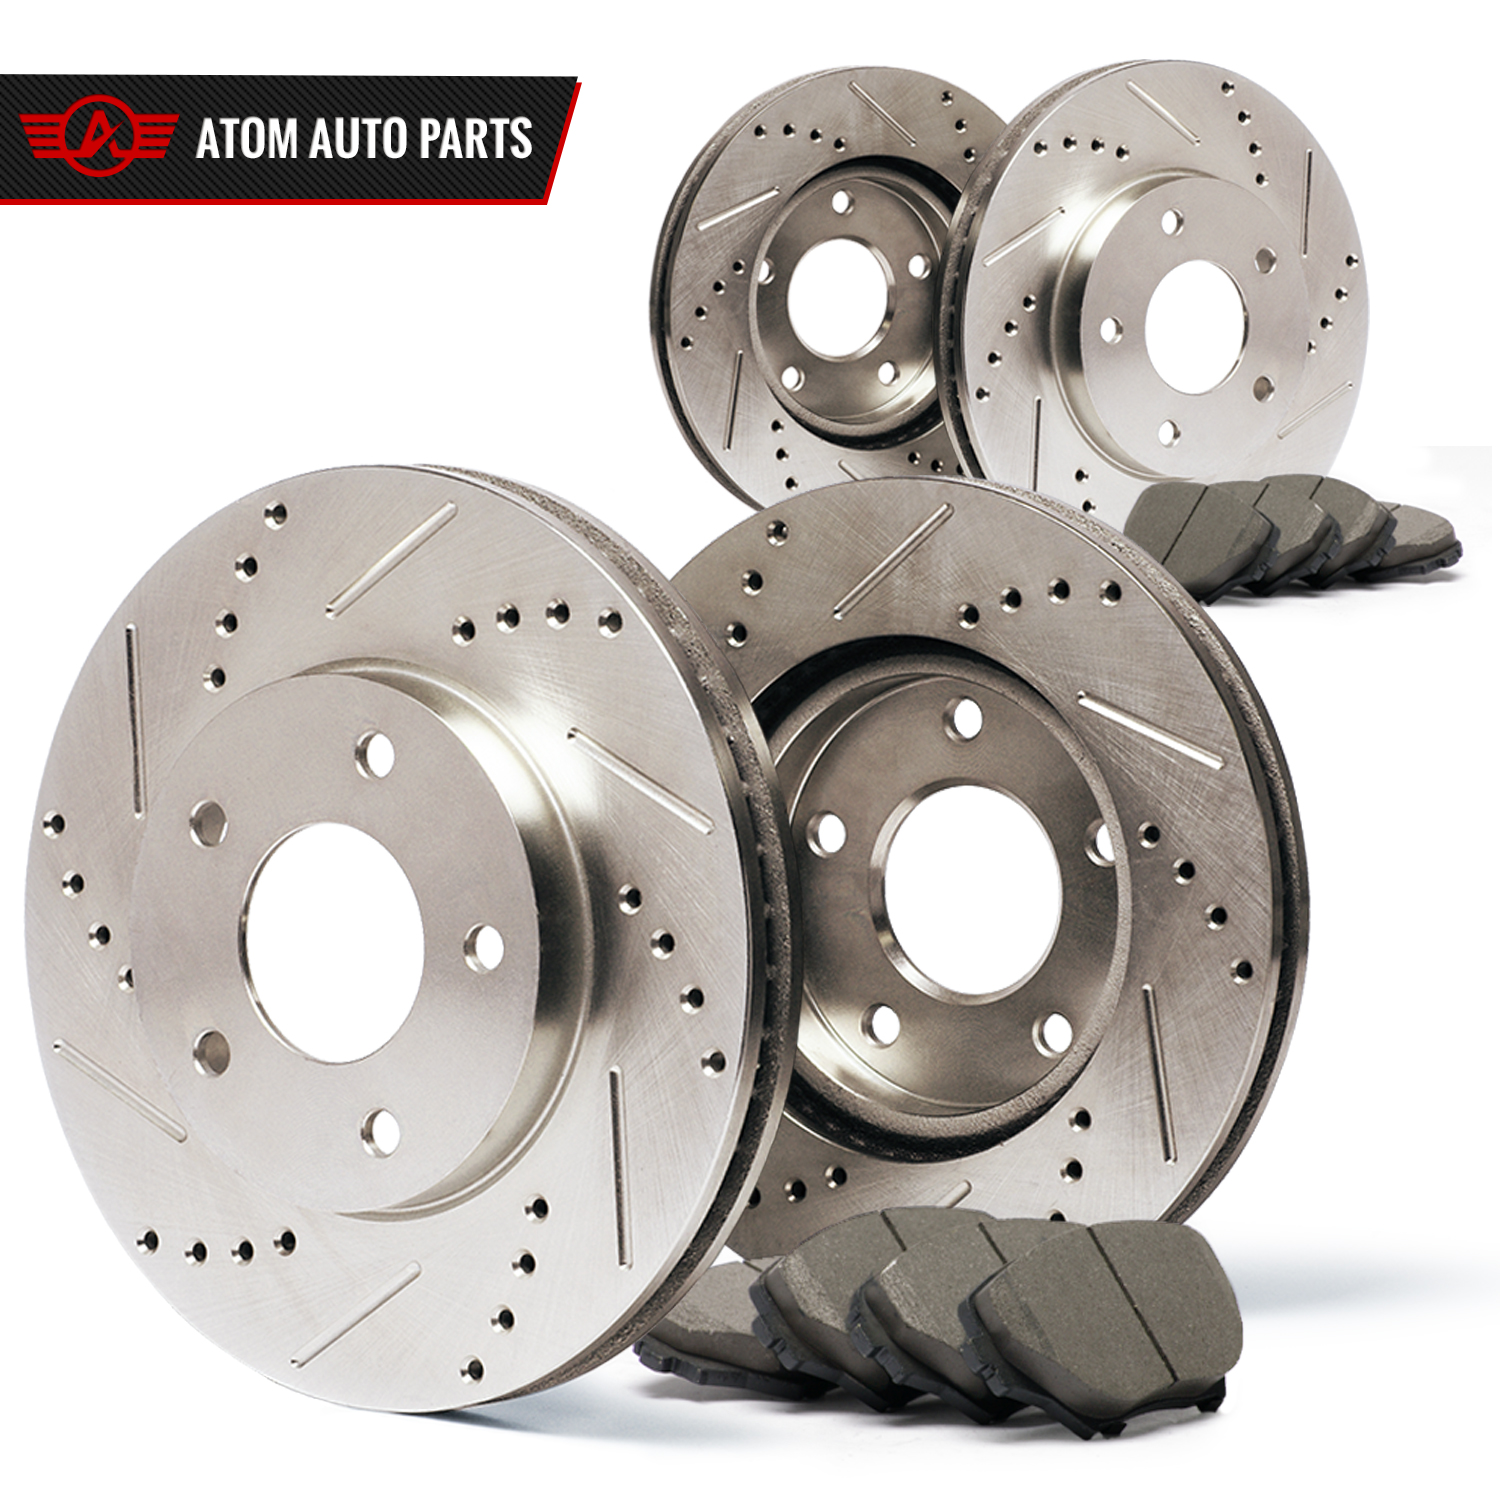 2010-GMC-Sierra-3500HD-w-SRW-Slotted-Drilled-Rotors-Ceramic-Pads-F-R